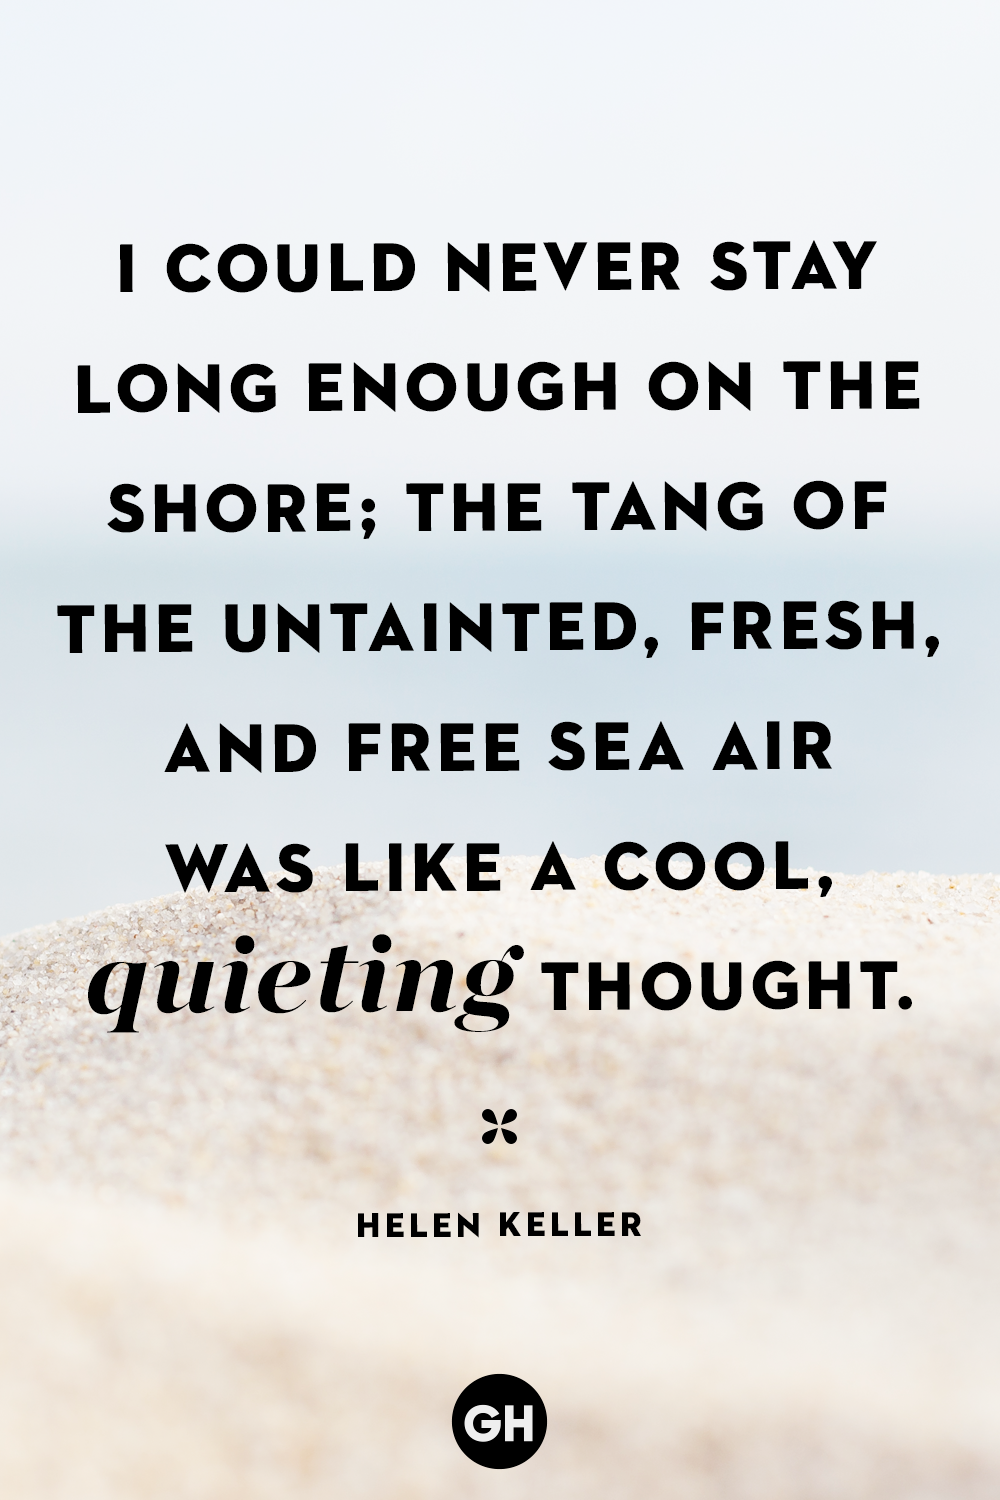 30 Best Beach Quotes - Sayings and Quotes About the Beach